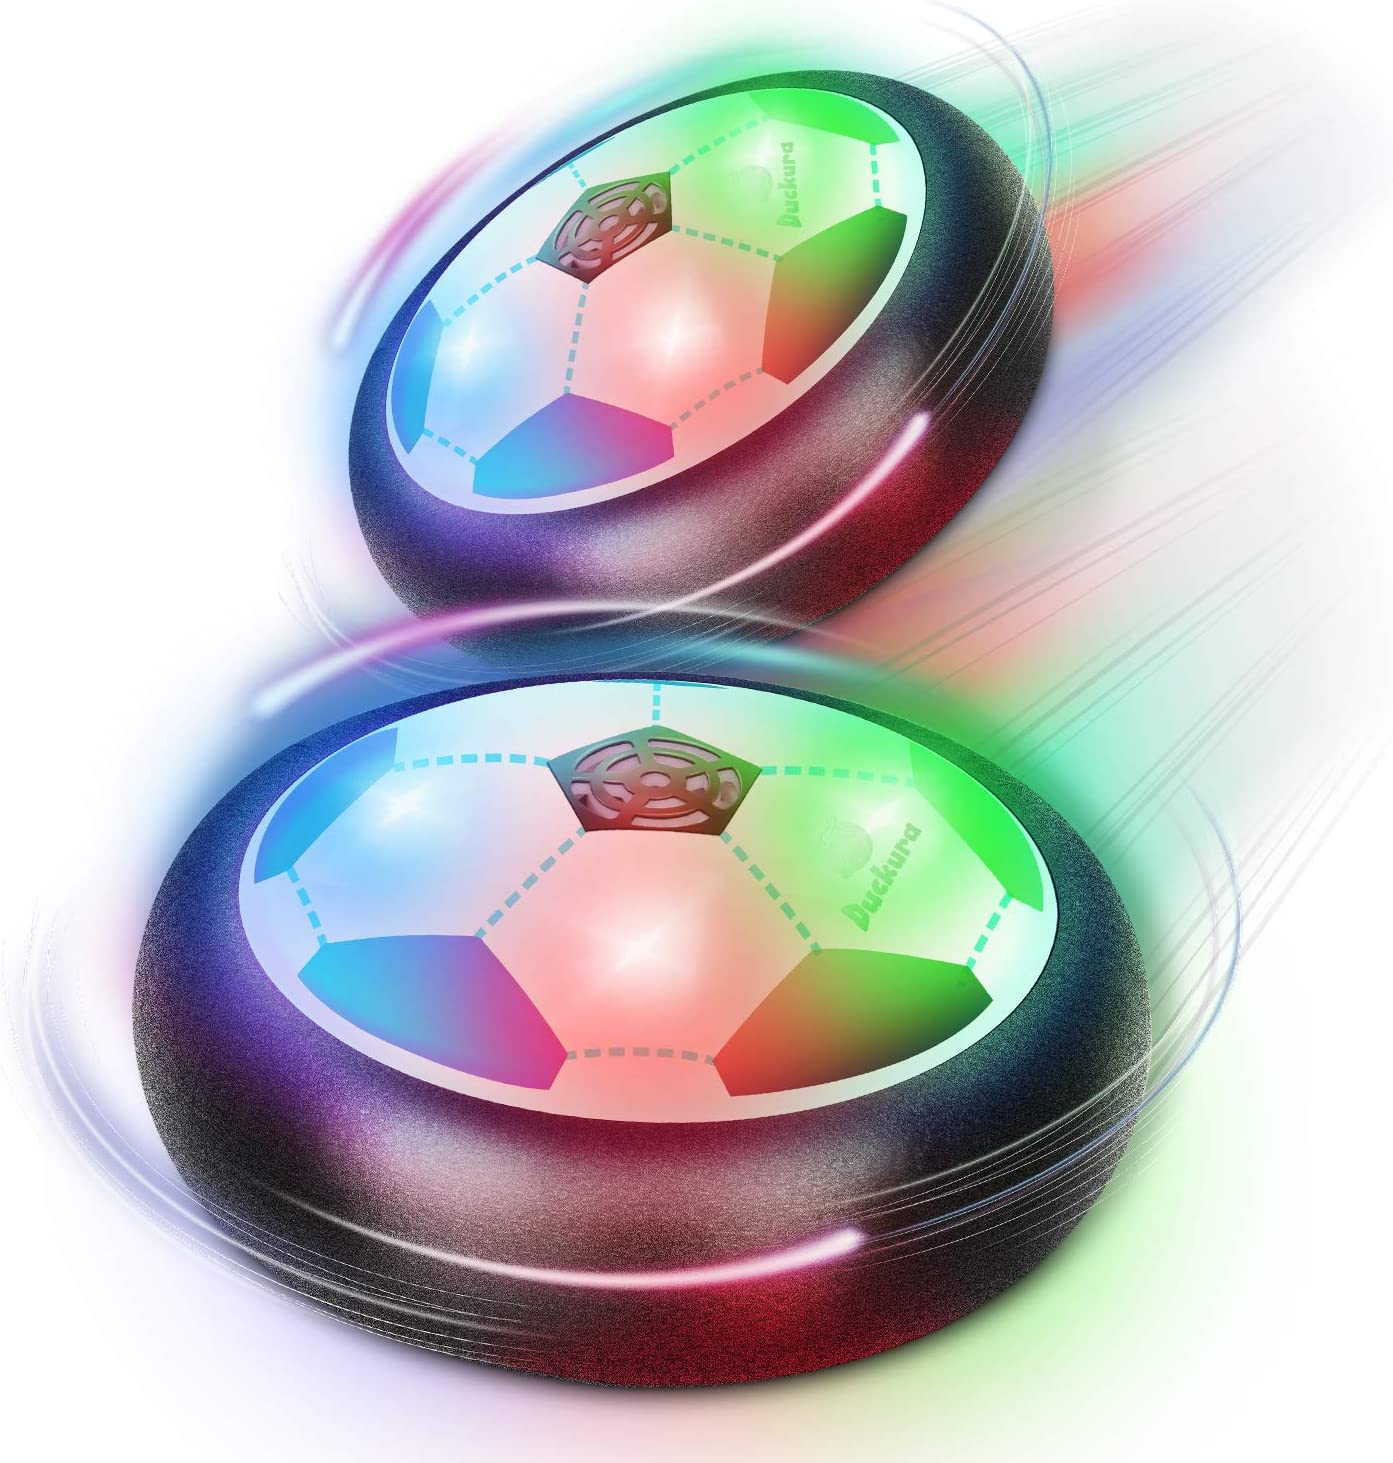 Duckura Air Hover Soccer Balls Toys for Kids, Indoor Games Activities with LED Lights and Foam Bumpers, Christmas Birthday Party Gifts Toys for Boys Girls Toddlers Age 5 6 7 8 9 10 Years Old (2 Pack)